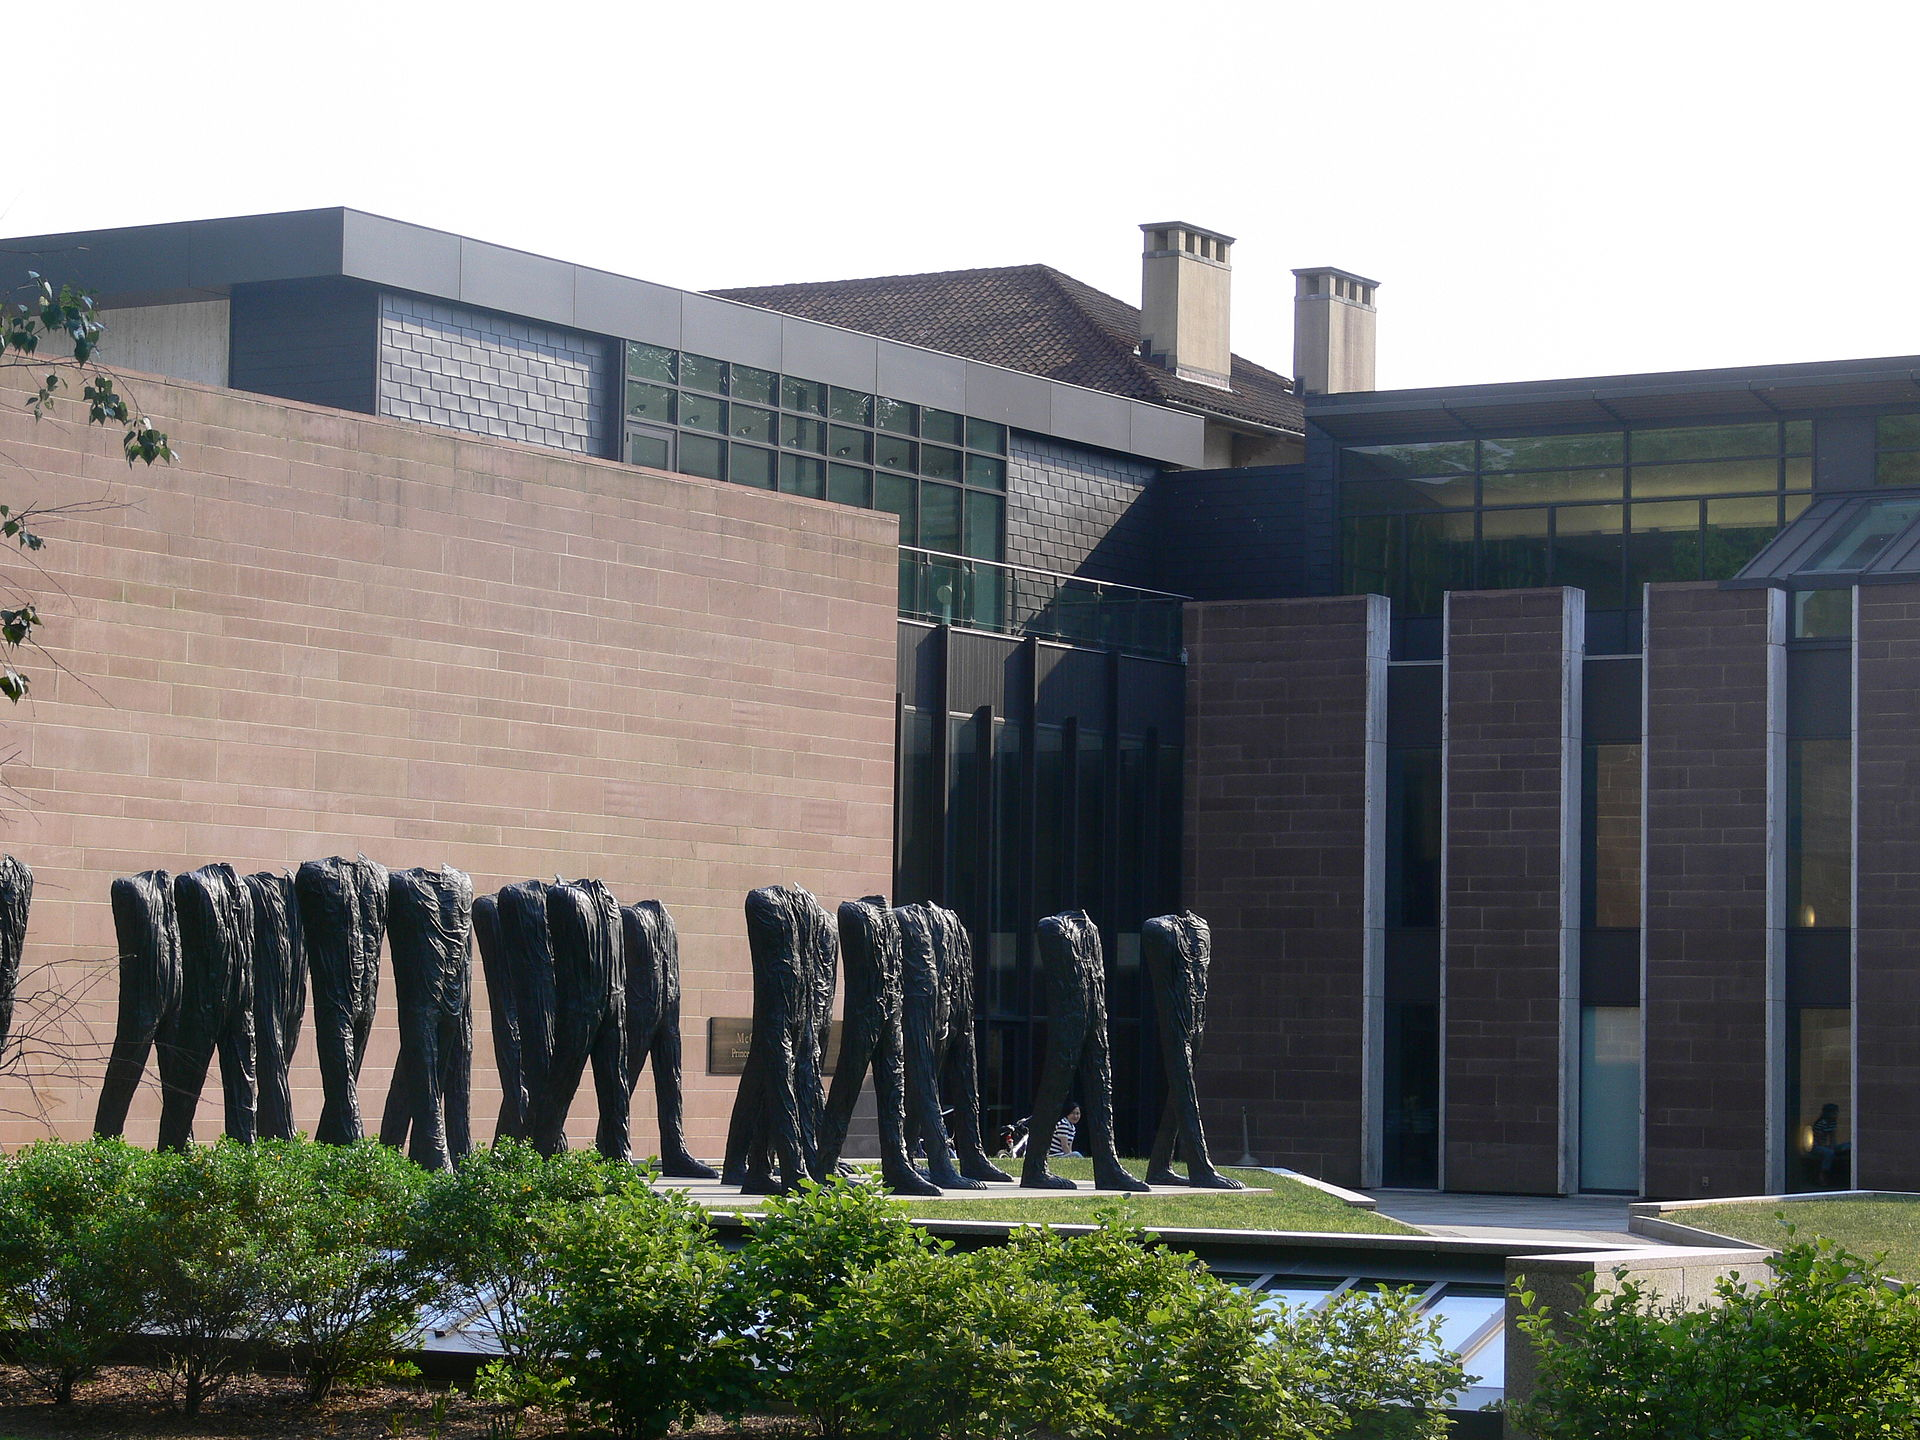 The Princeton University Art Museum was founded in 1882.